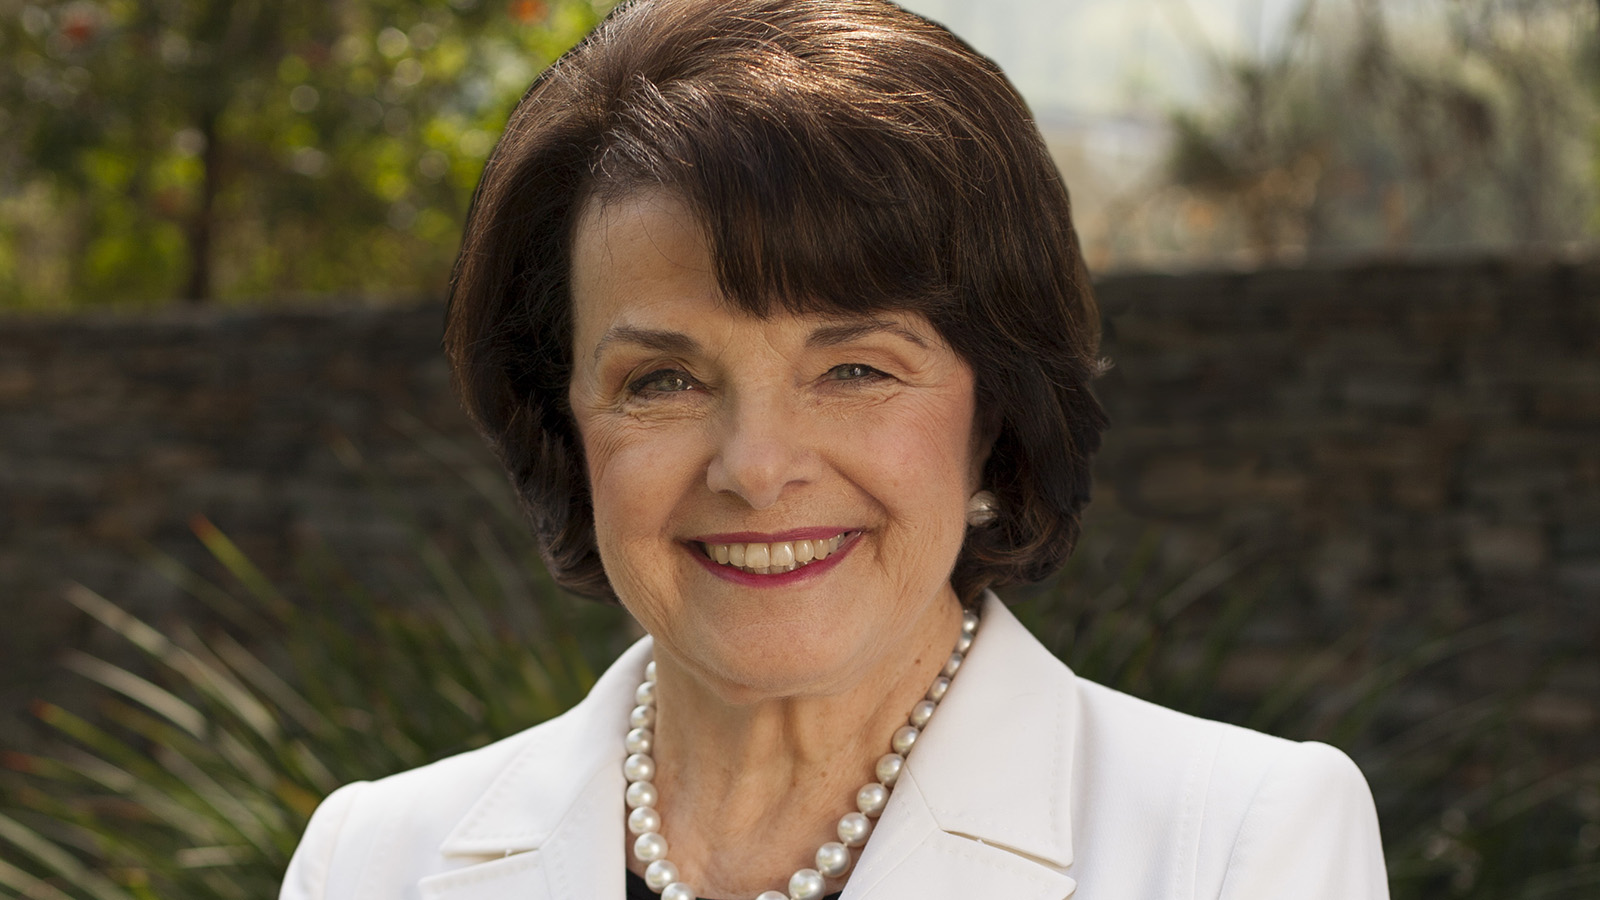 from Prince senator dianne feinstein and gay rights